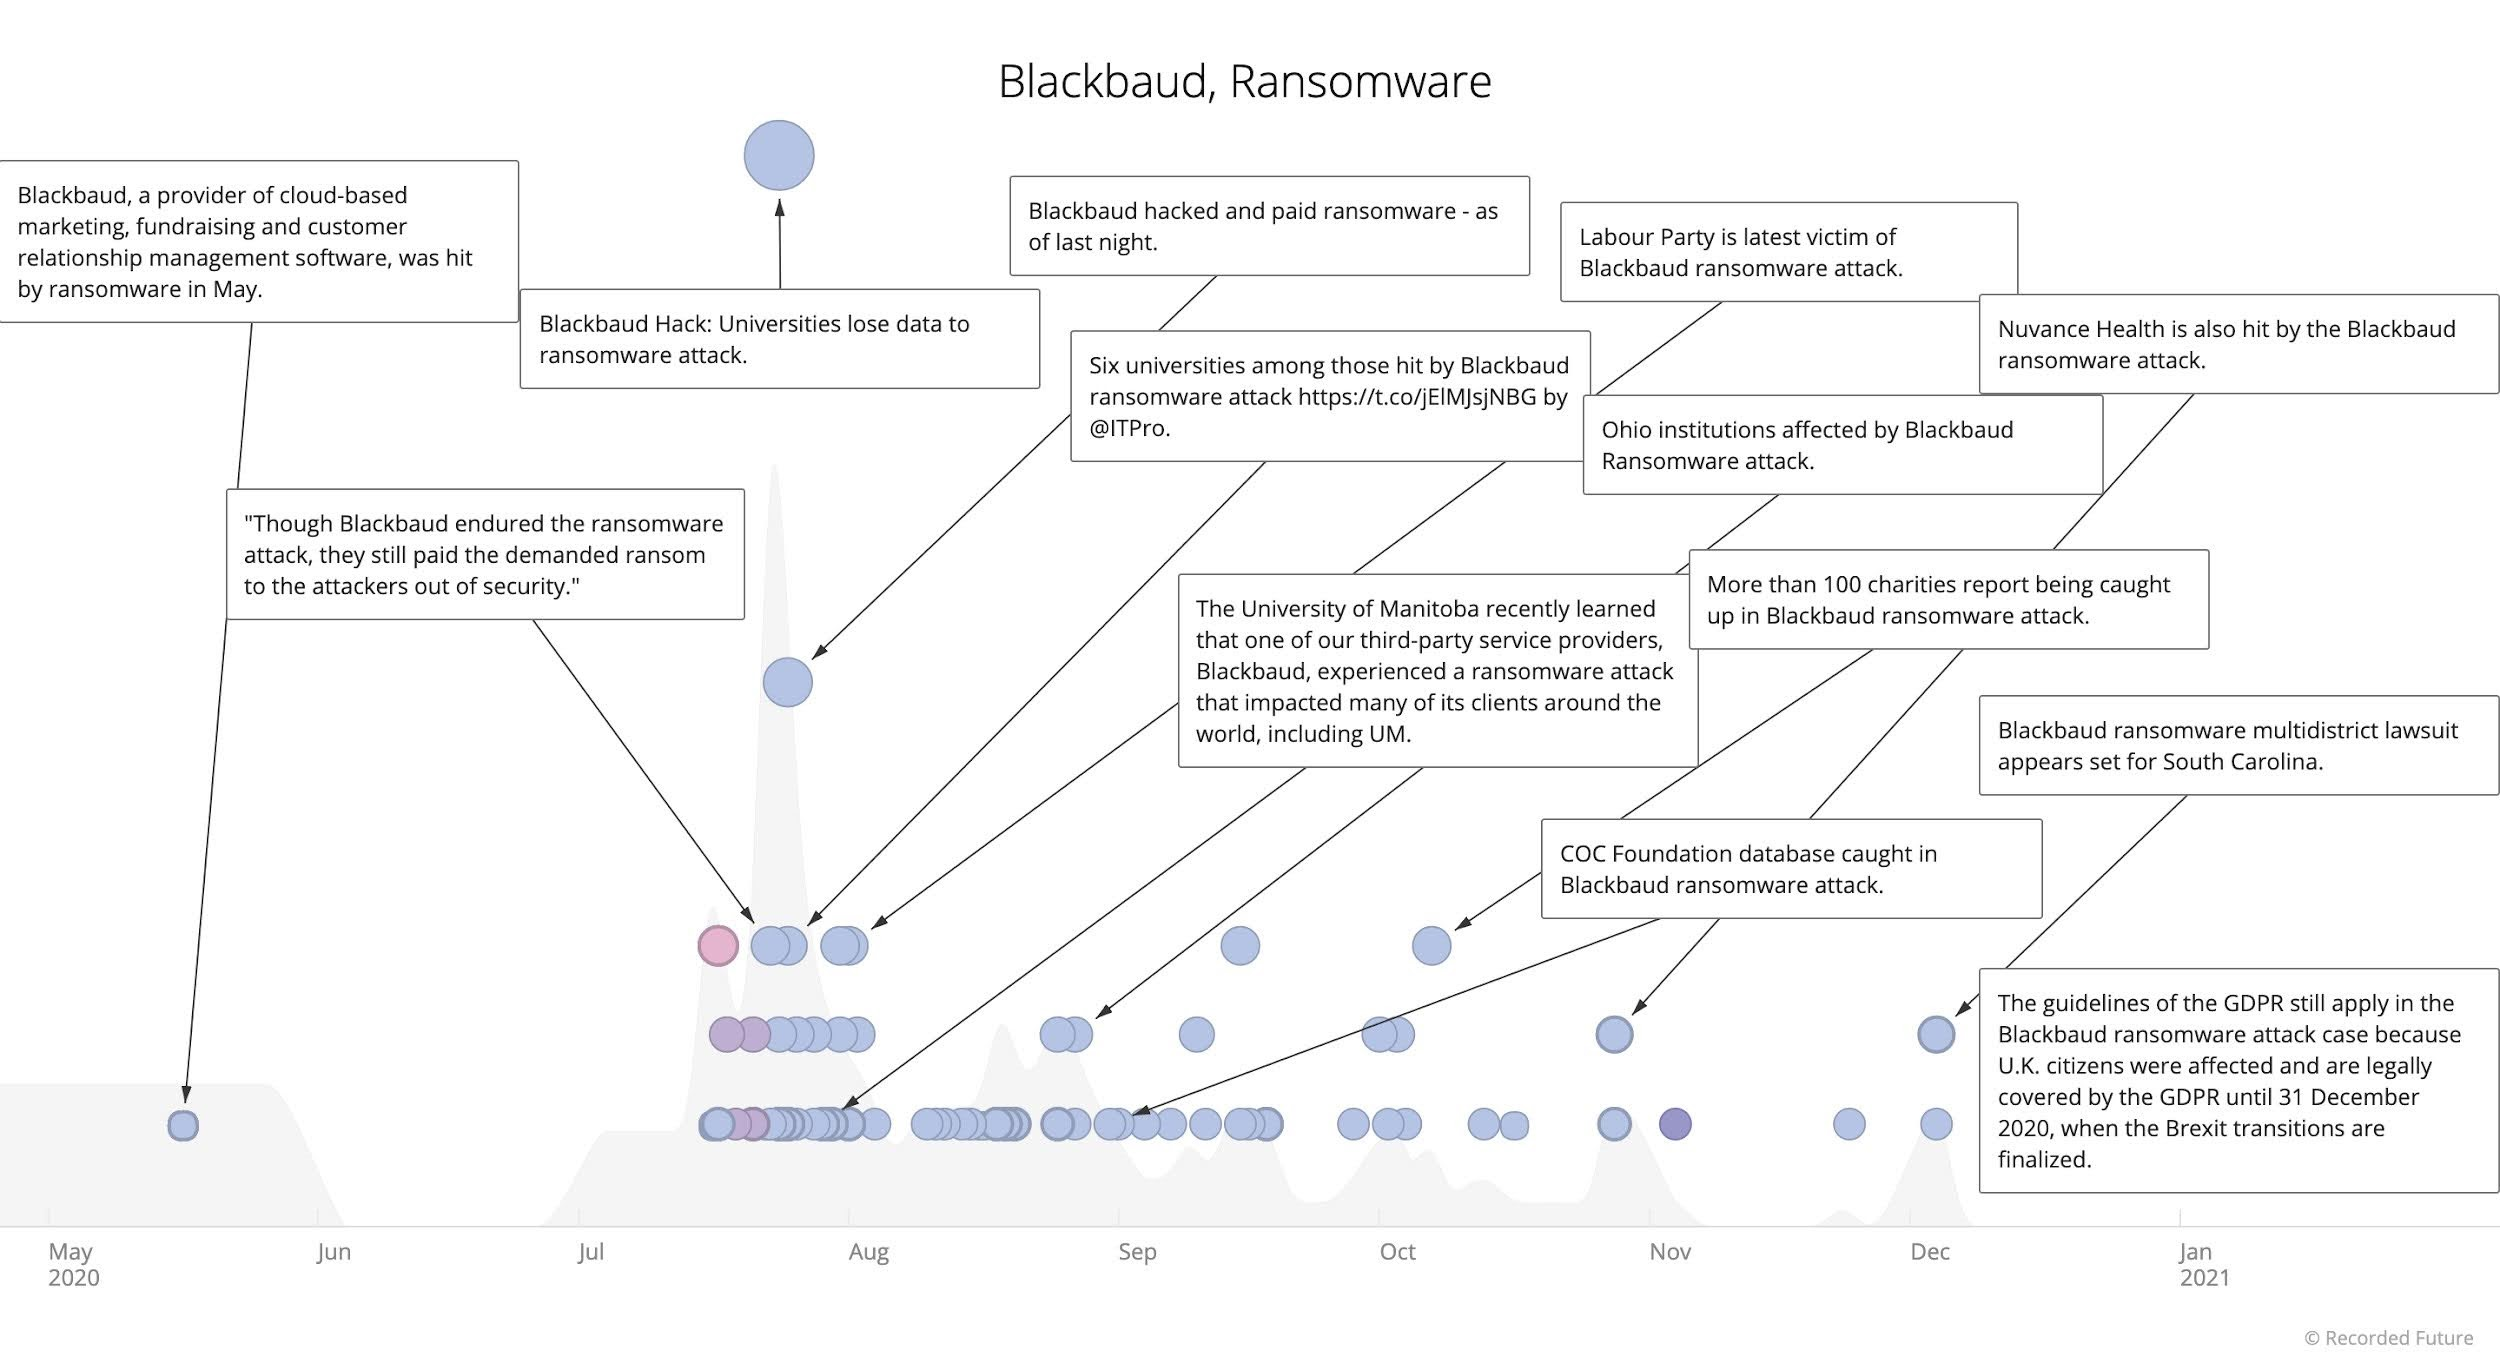 Timeline of Blackbaud ransomware attack and ripple effects 2020